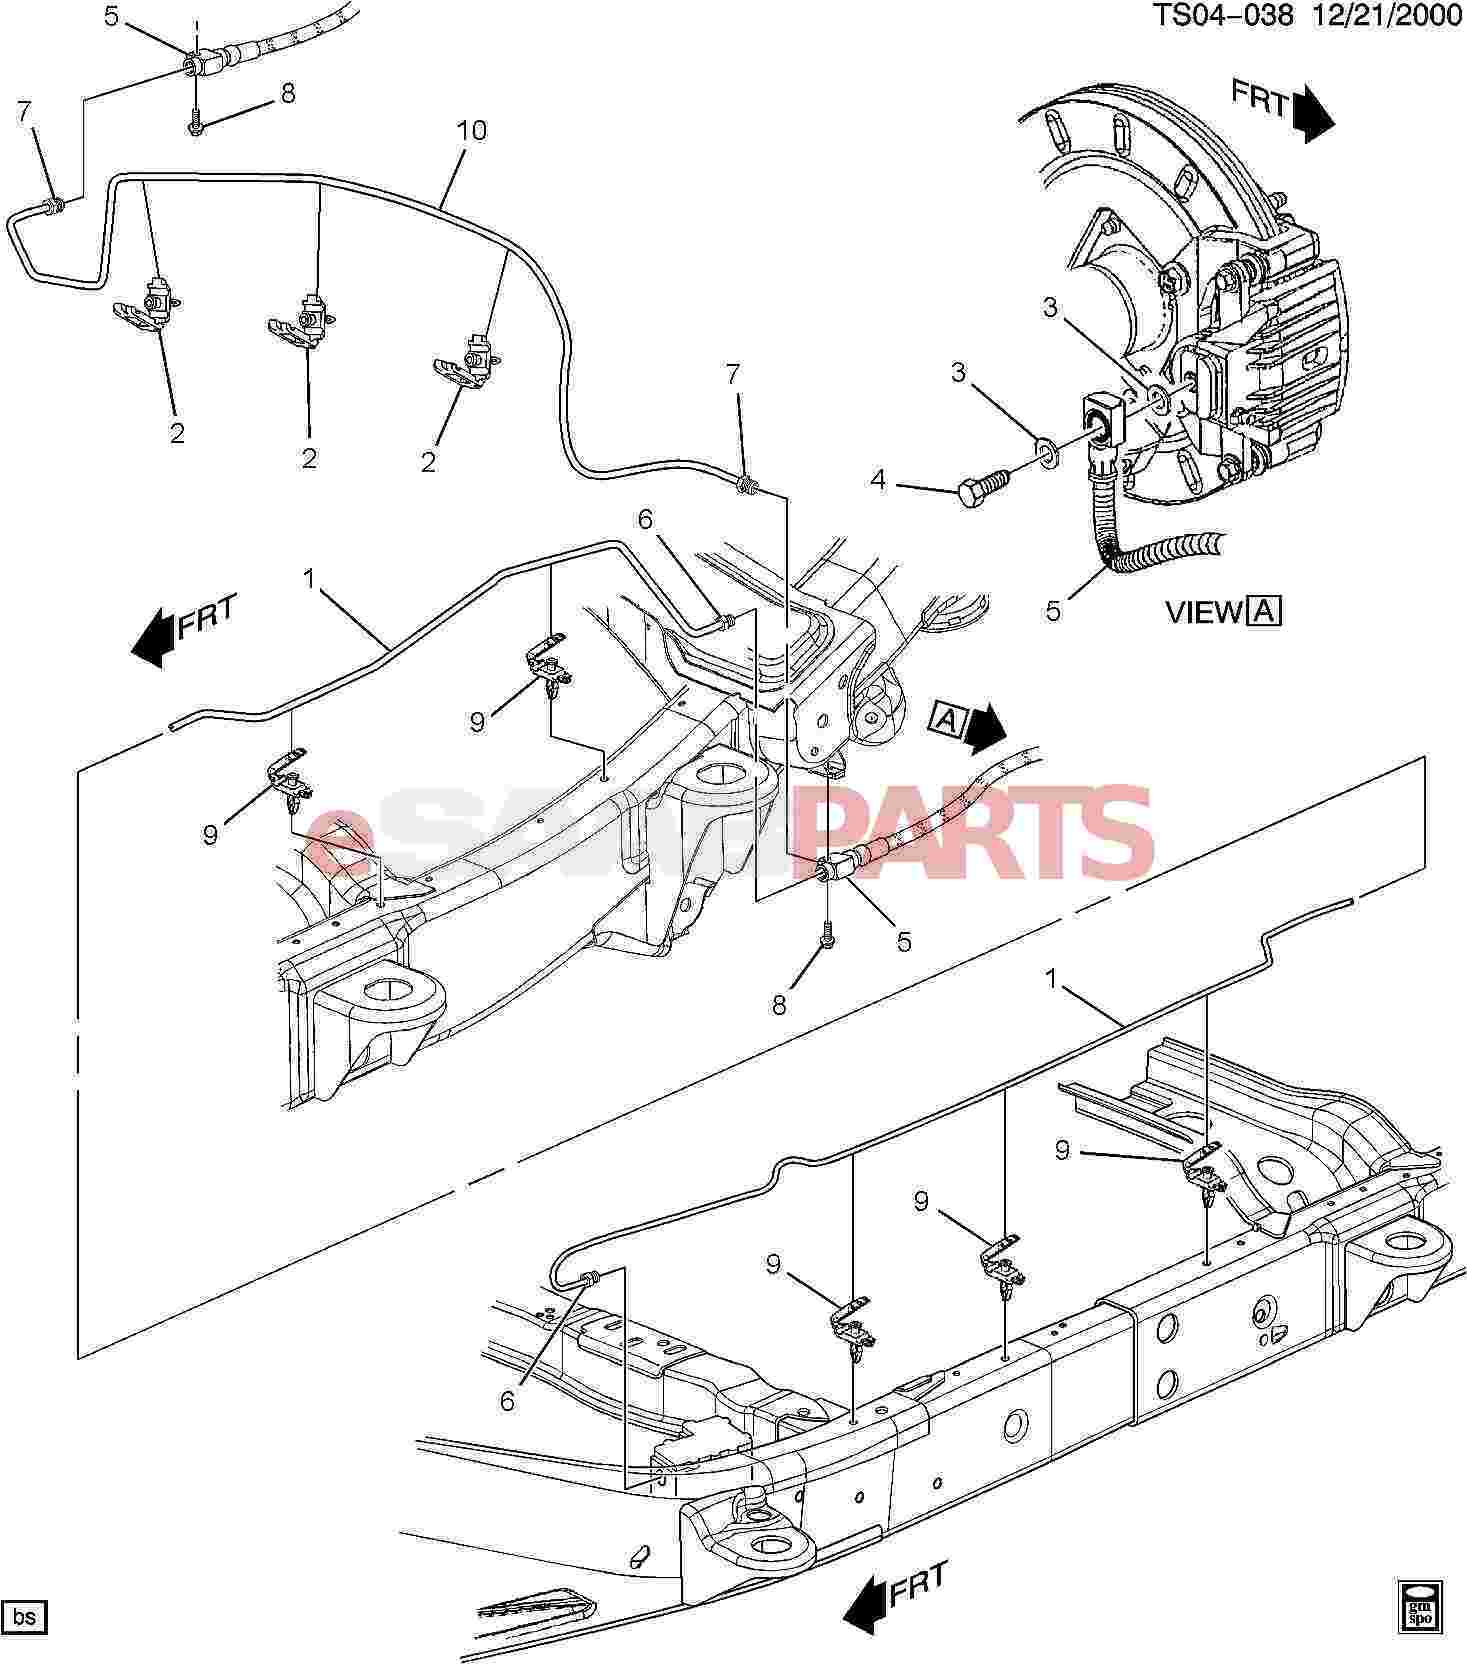 chevy drum brakes diagram desert food chain energy flow saab 9 3 engine cover bolt wiring and fuse box